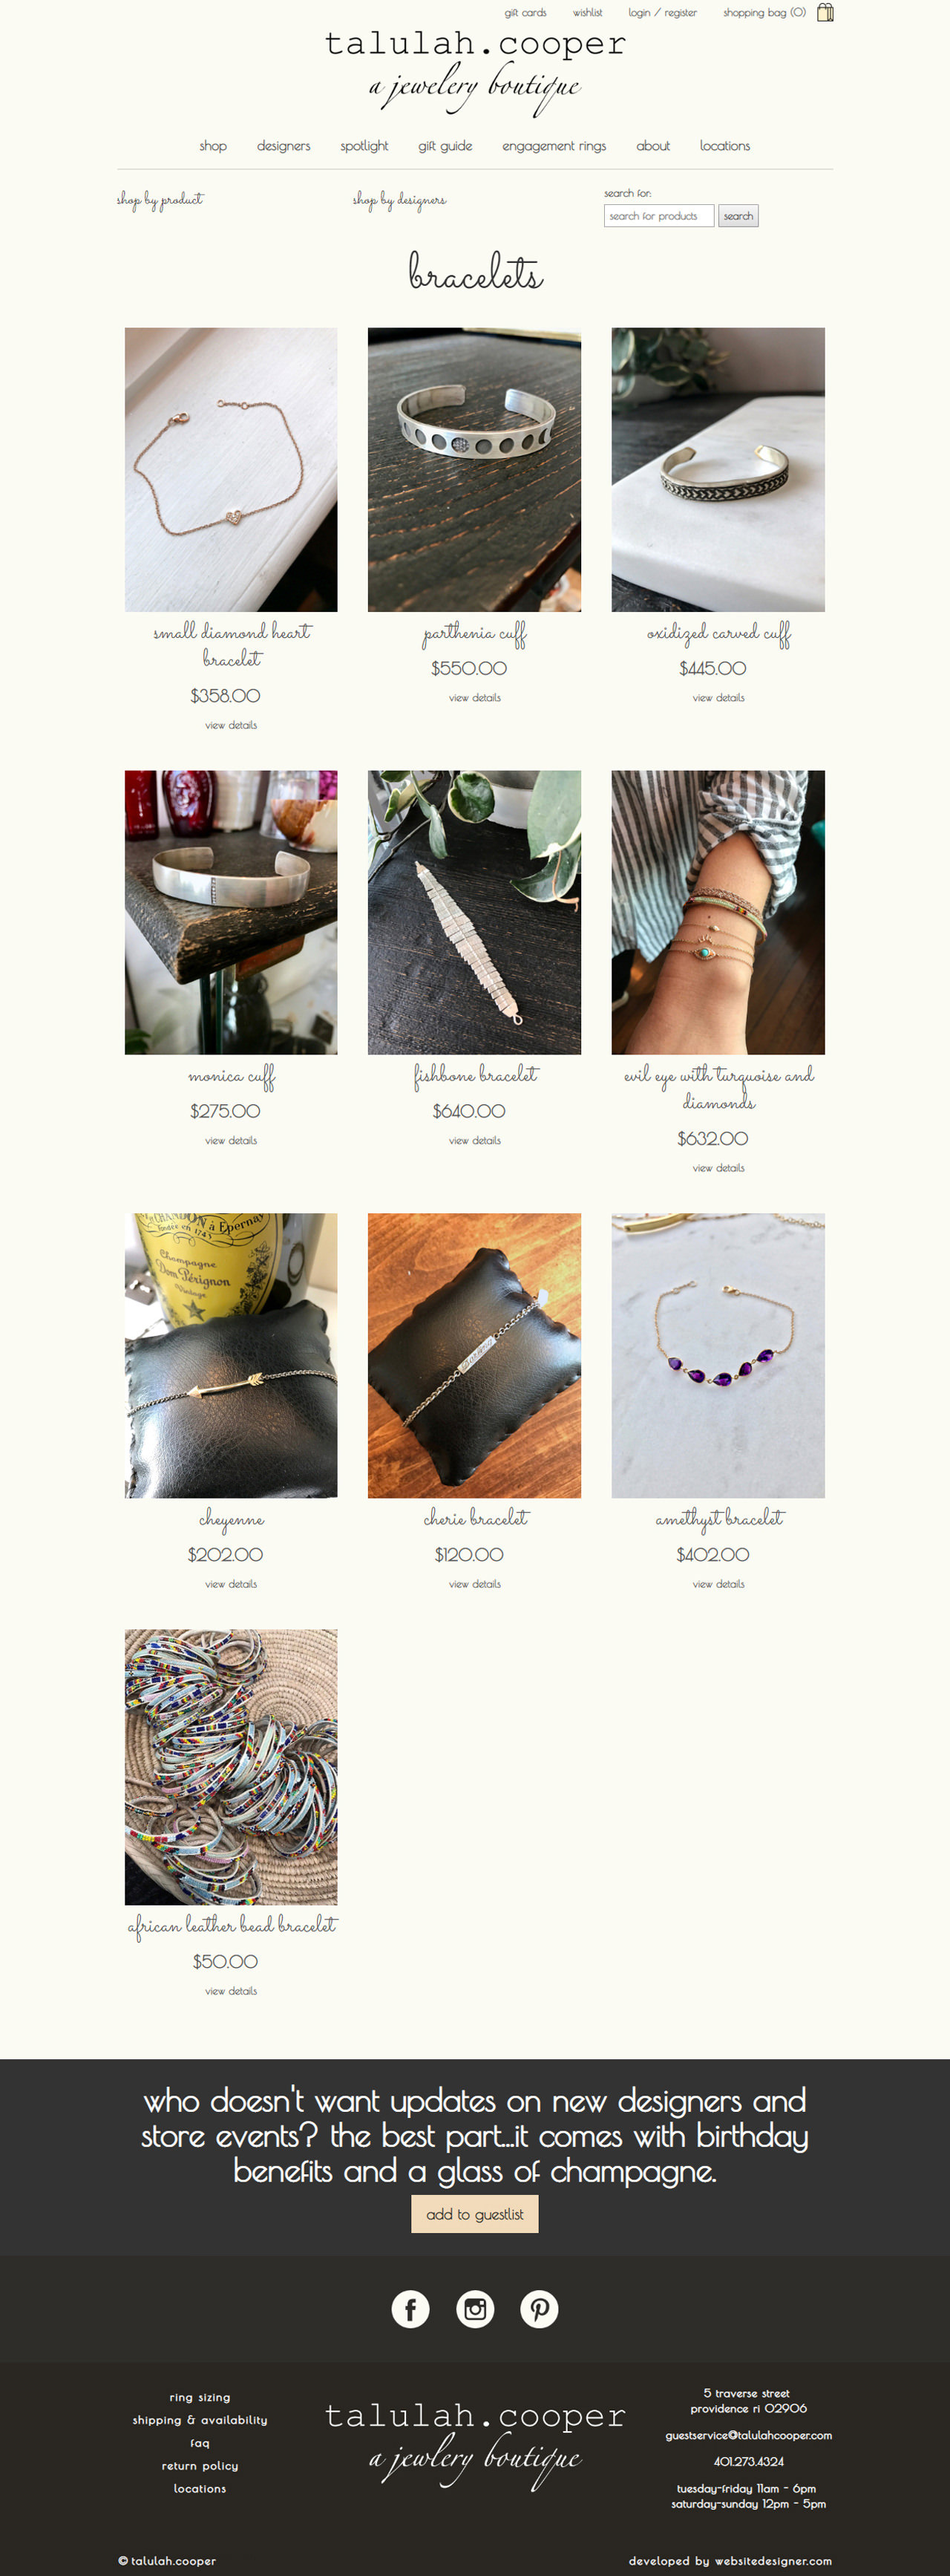 Talulah Cooper a Jewelry Boutique Inner Page